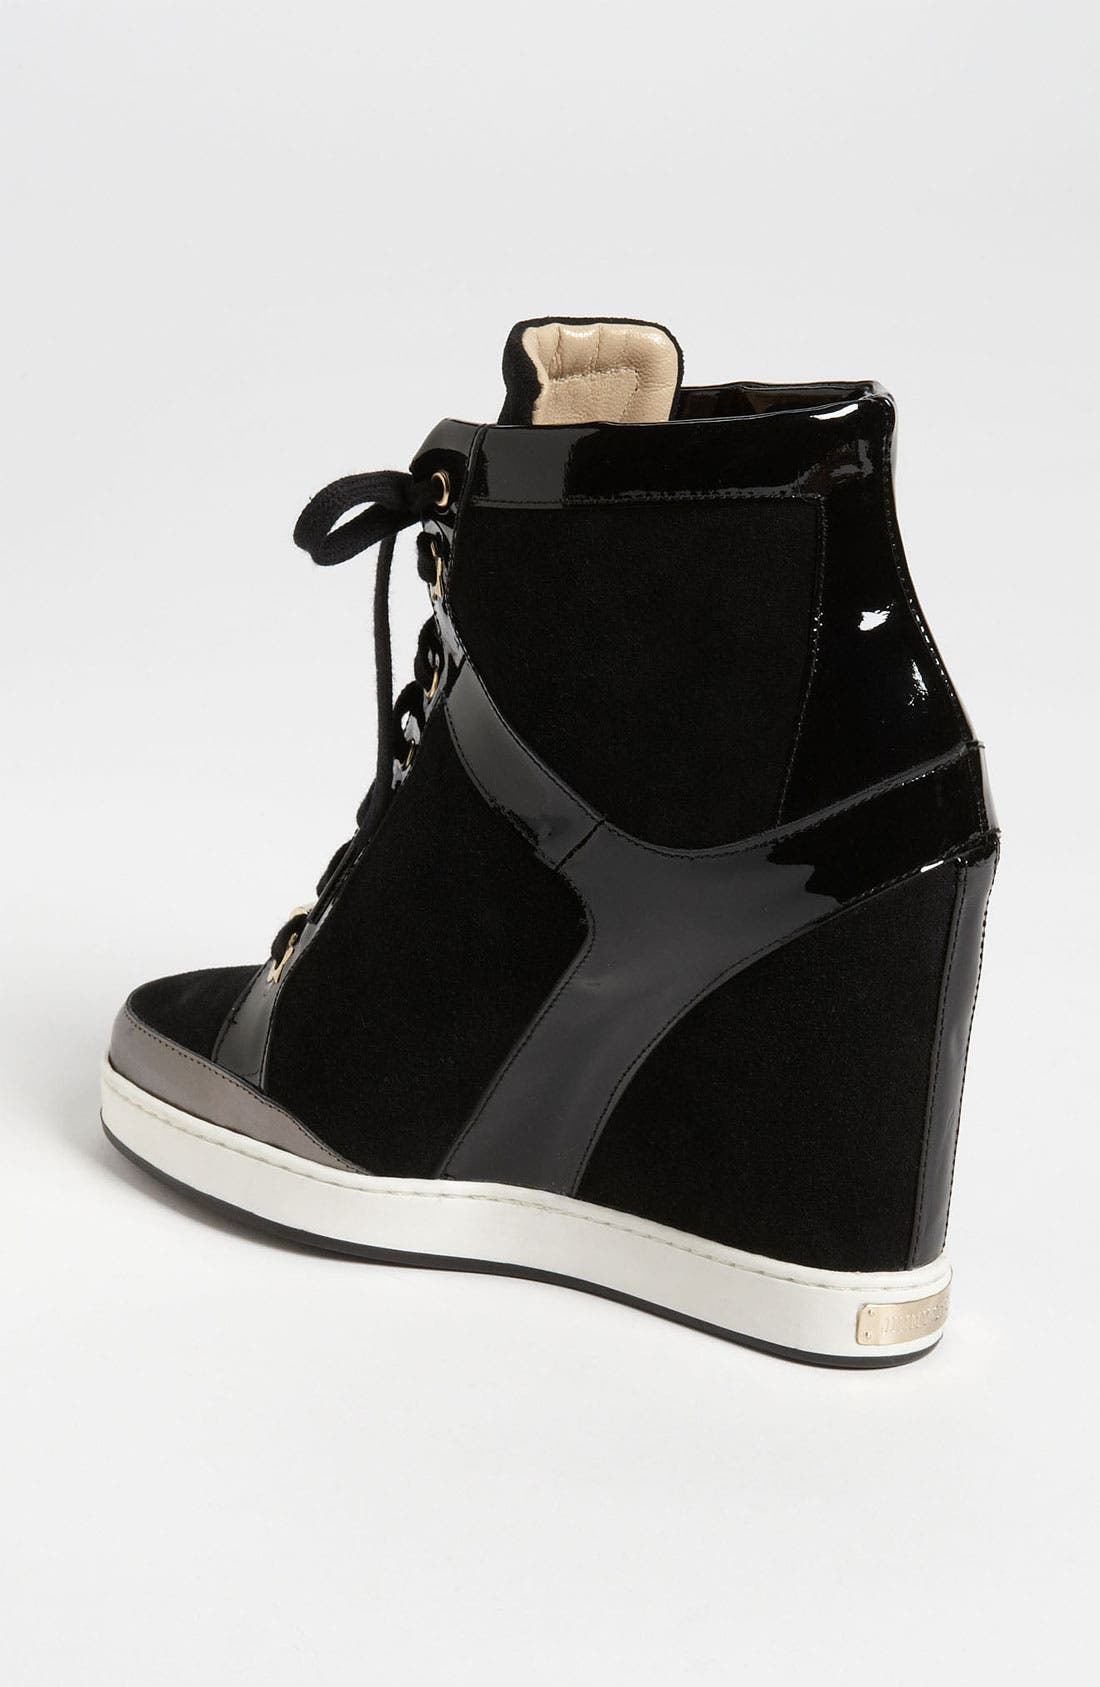 JIMMY CHOO, 'Panama' Wedge Sneaker, Alternate thumbnail 3, color, 001